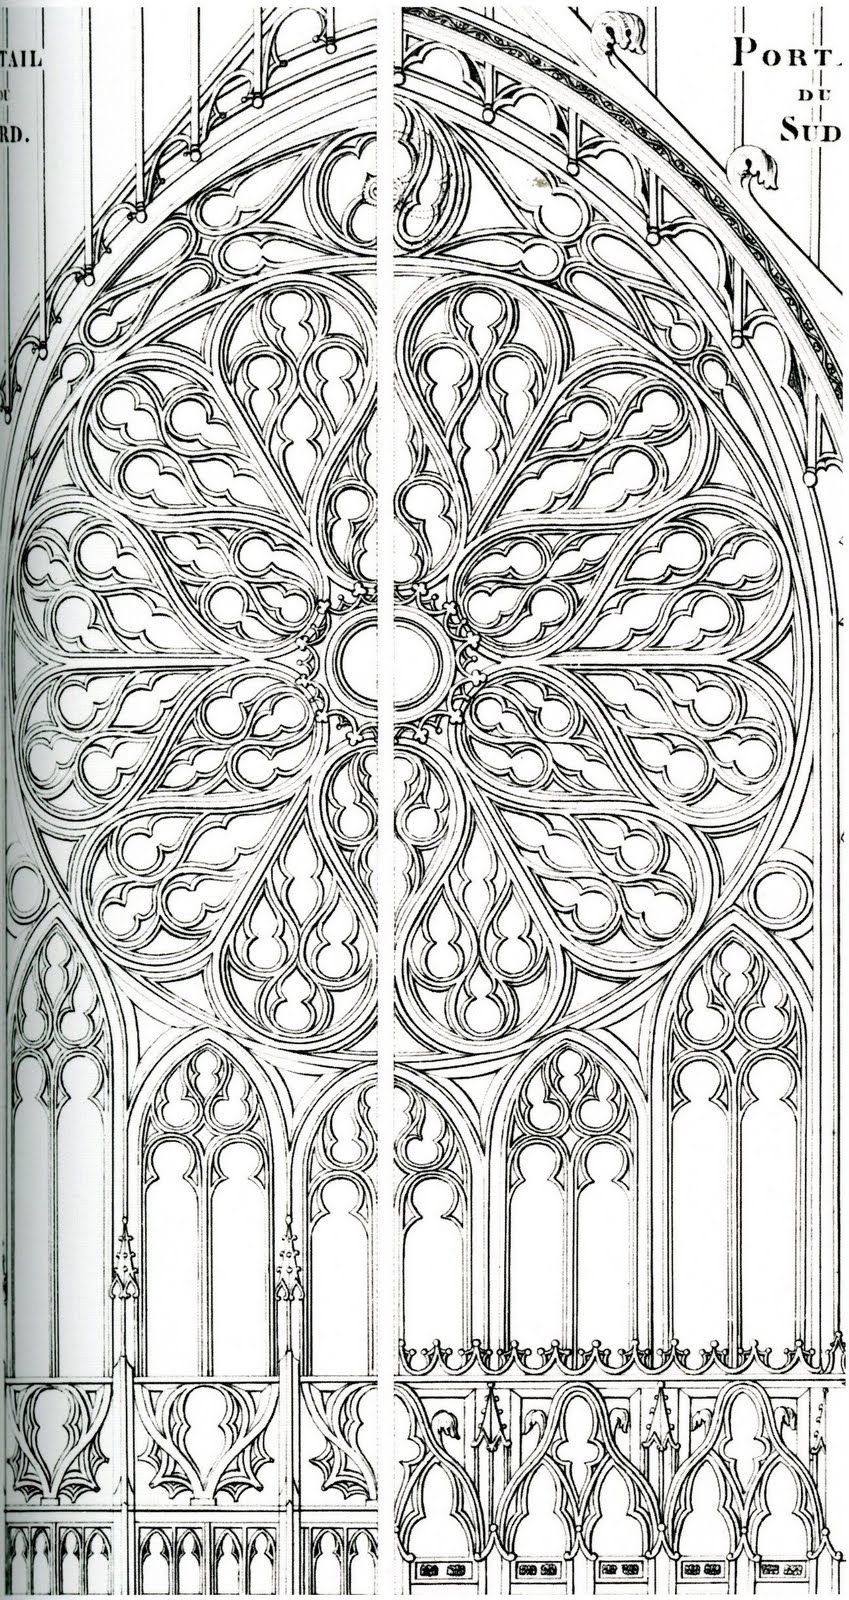 Frieze tile rose window drawings gothic pinterest for Rose window design